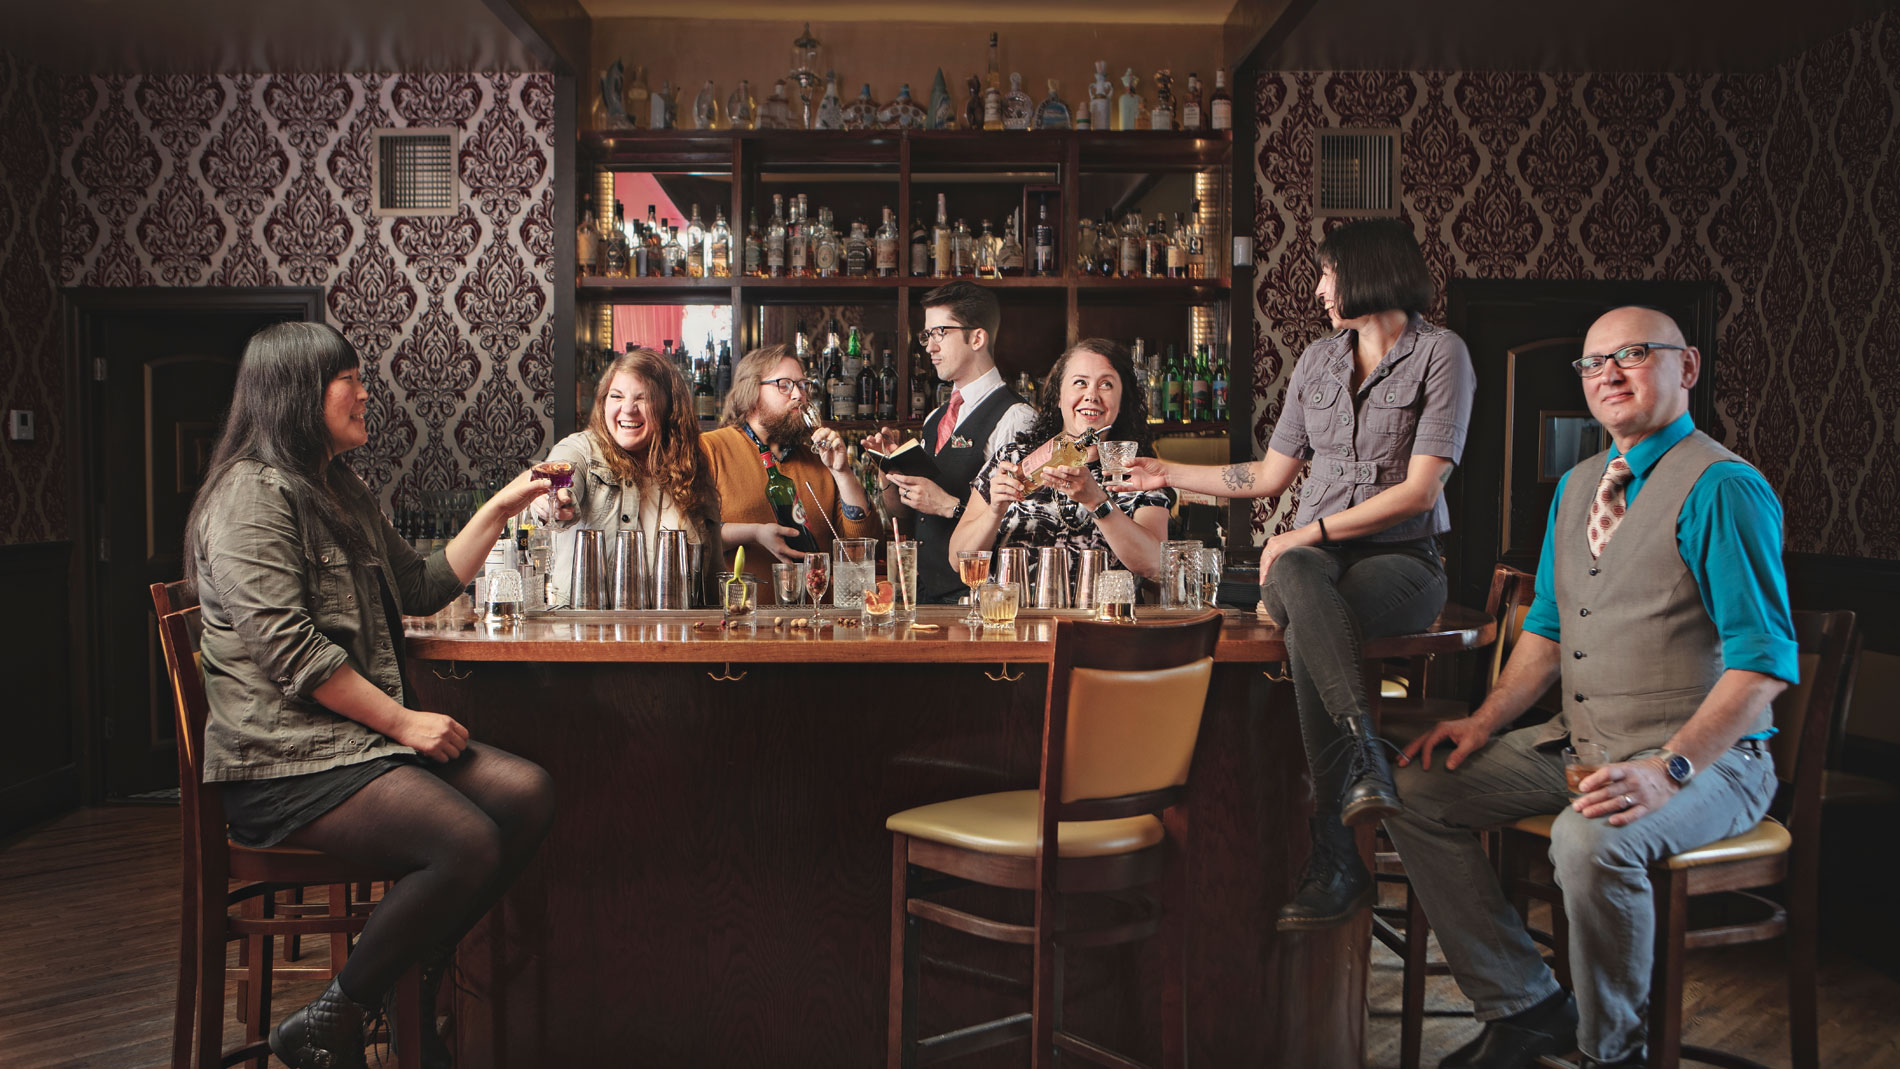 a group making and sharing drinks at a bar while a man in a vest sits on a bar stool in the corner